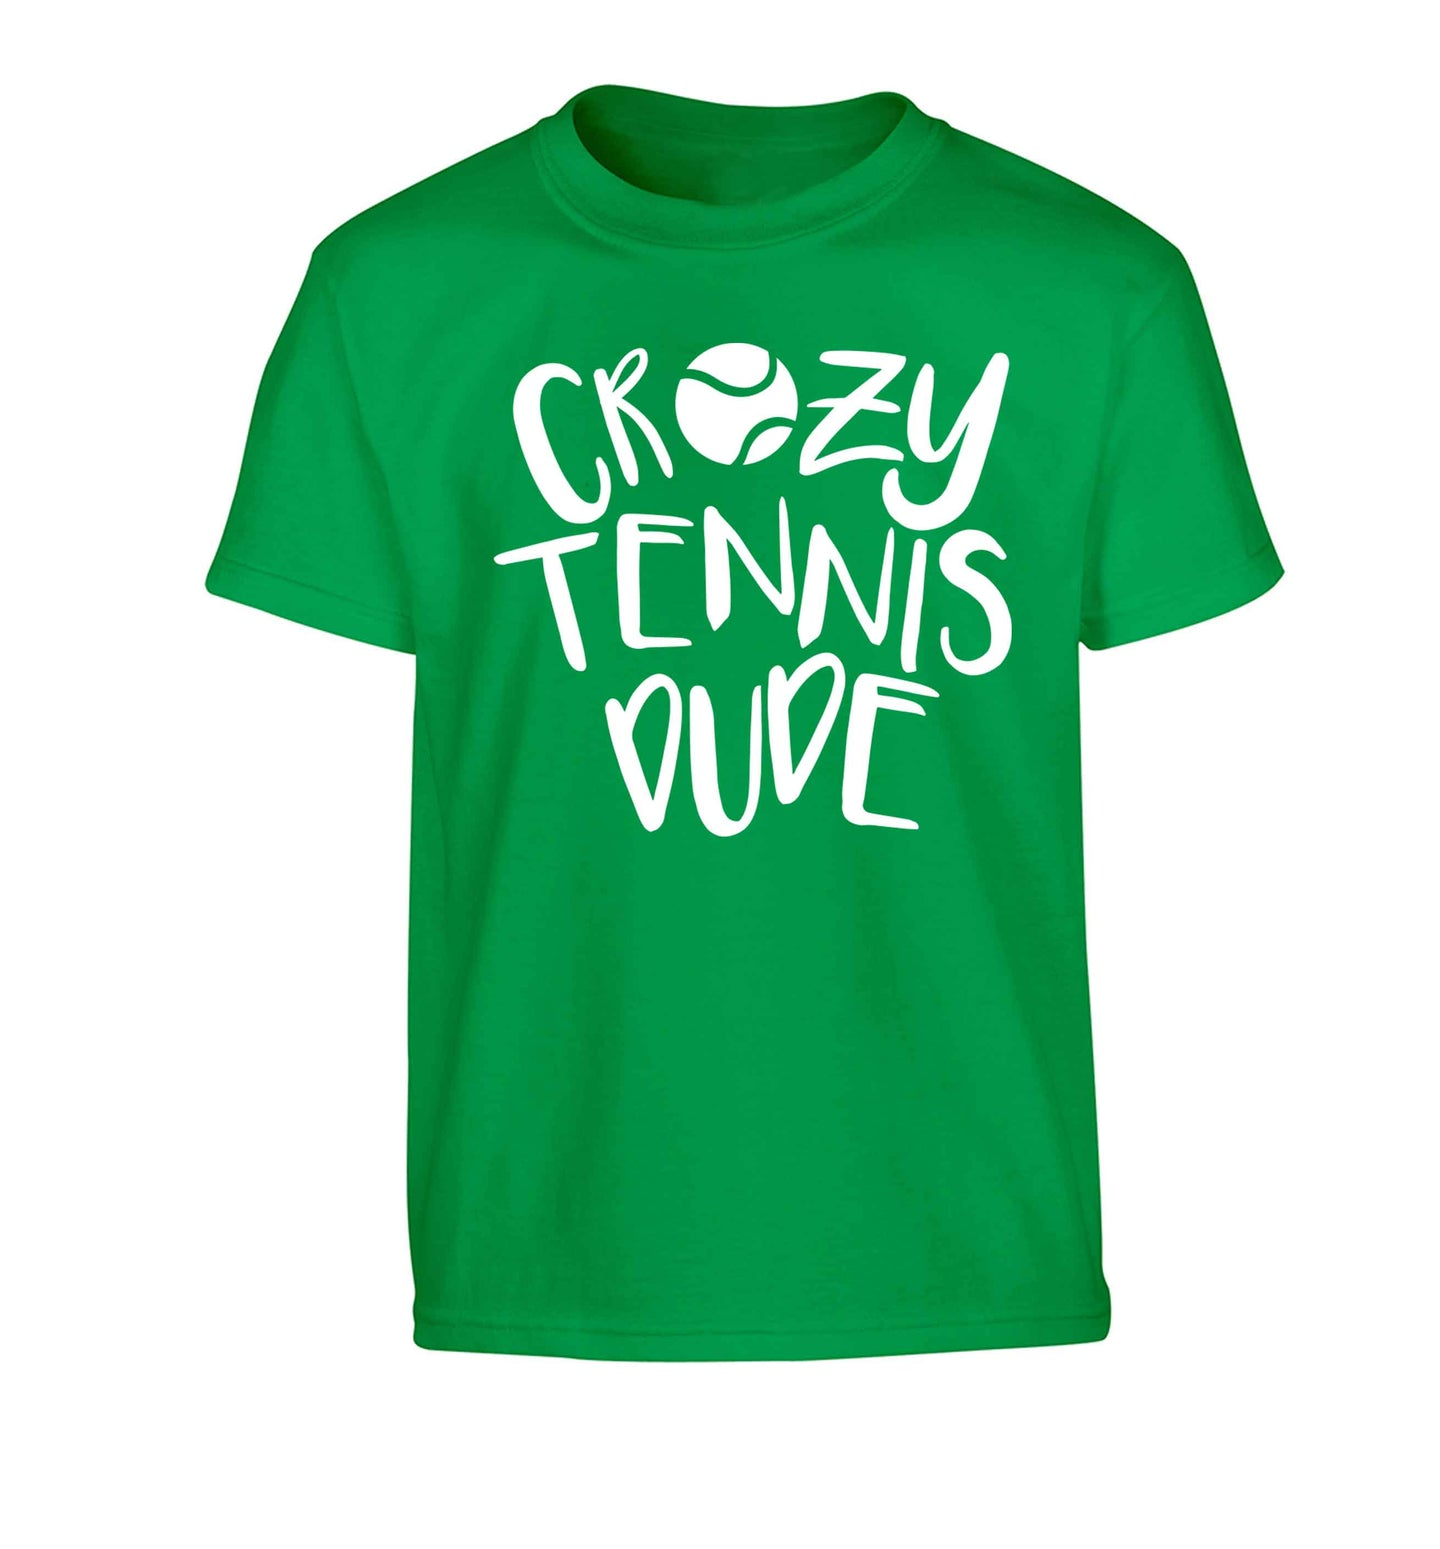 Crazy tennis dude Children's green Tshirt 12-13 Years